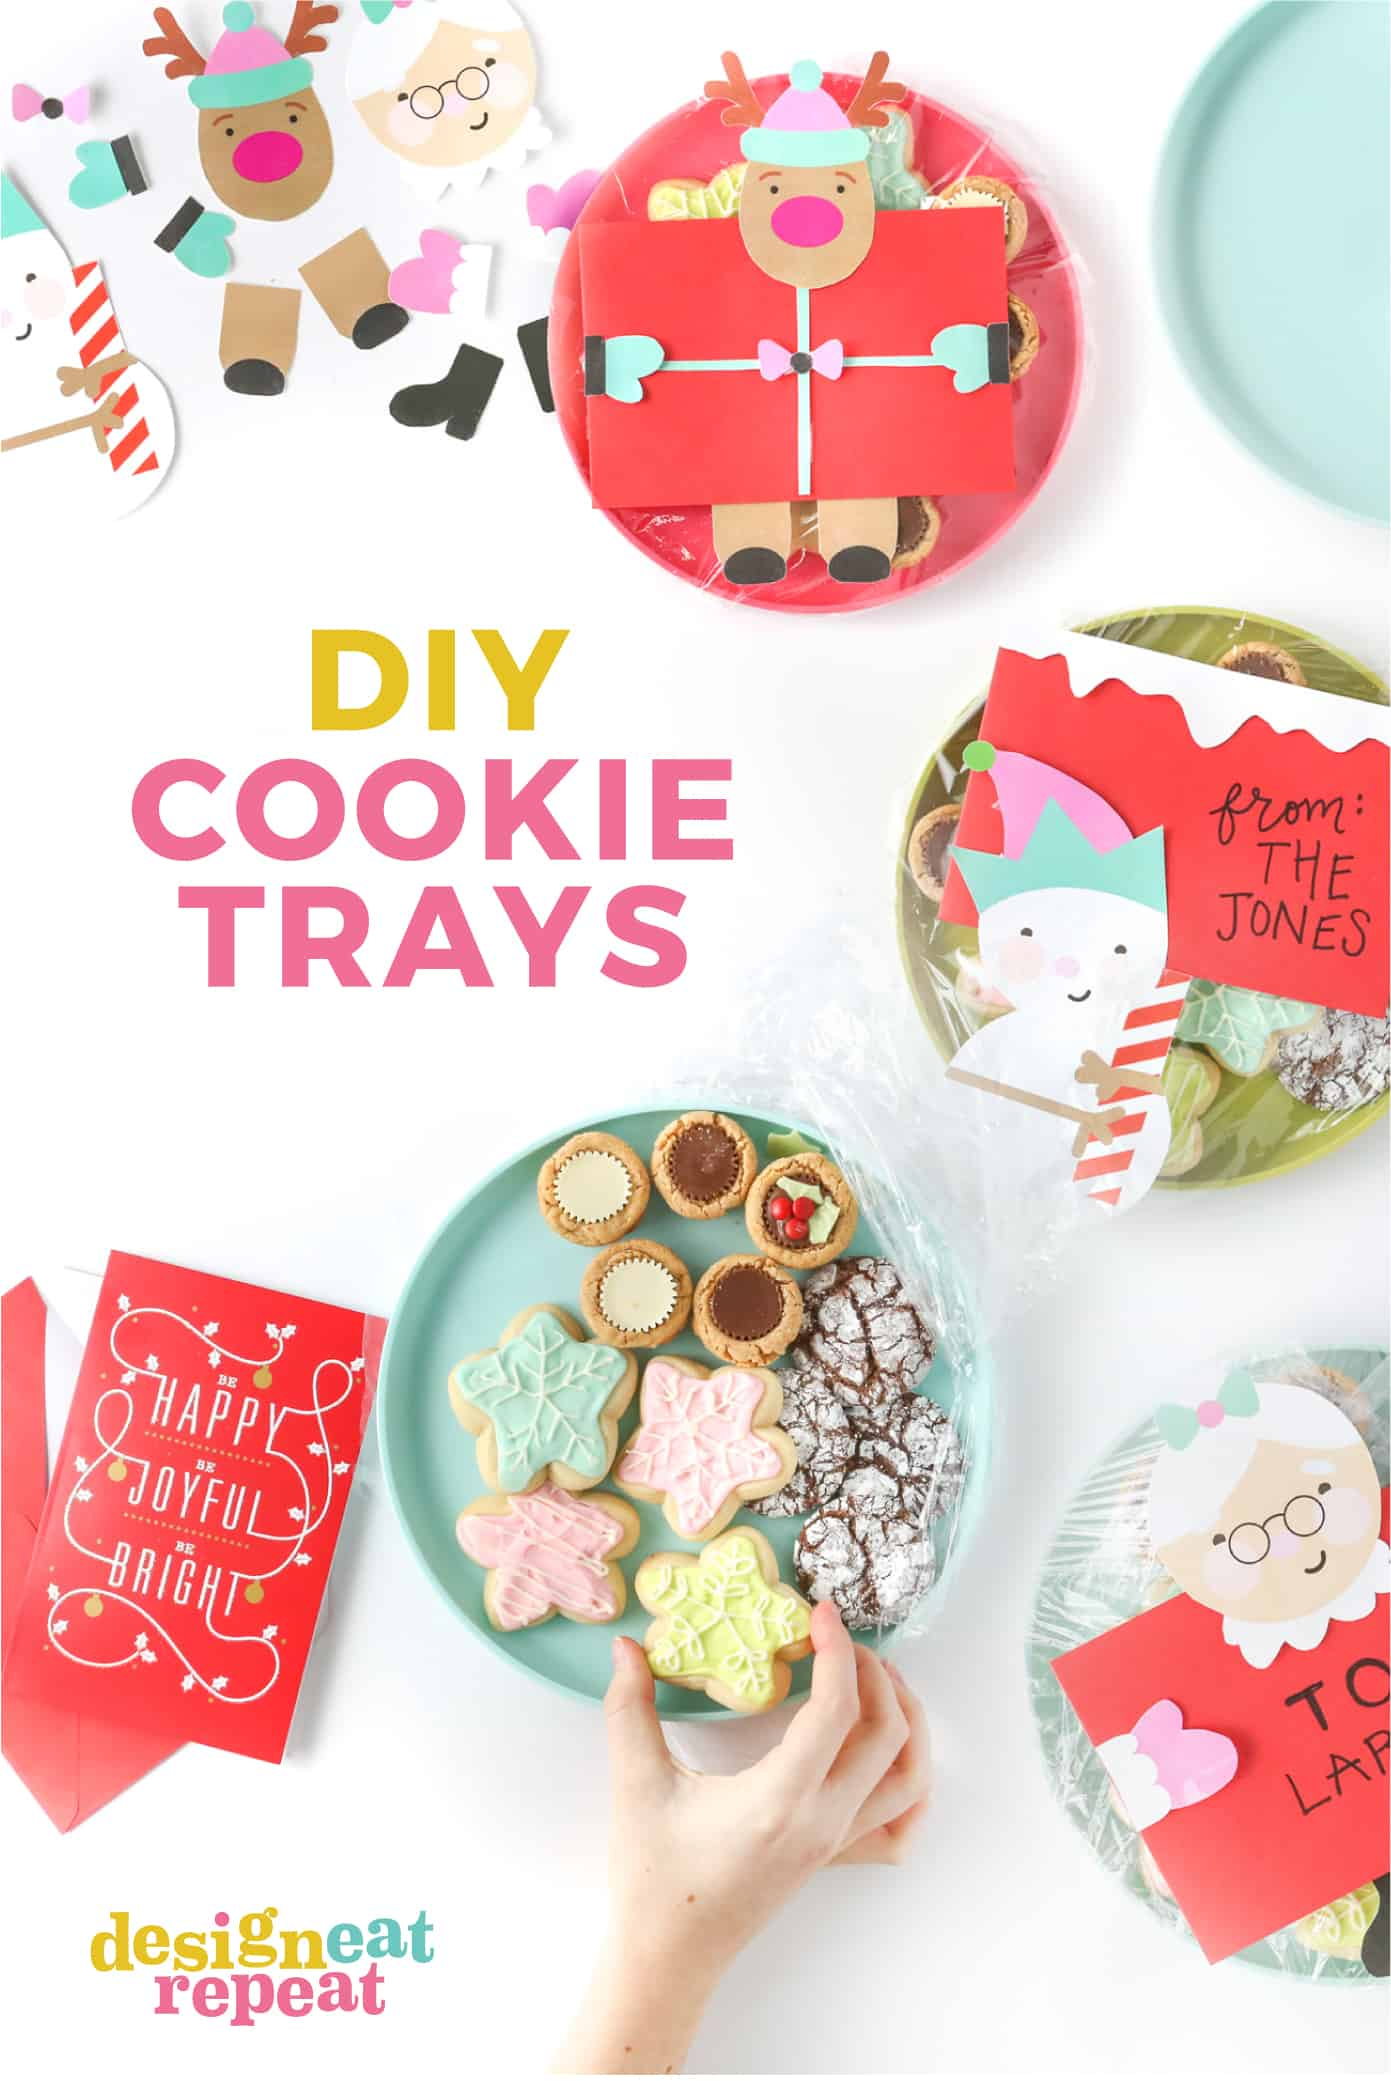 graphic about Diy Printables called 3 Do it yourself Cookie Tray Plans + Totally free Printables!